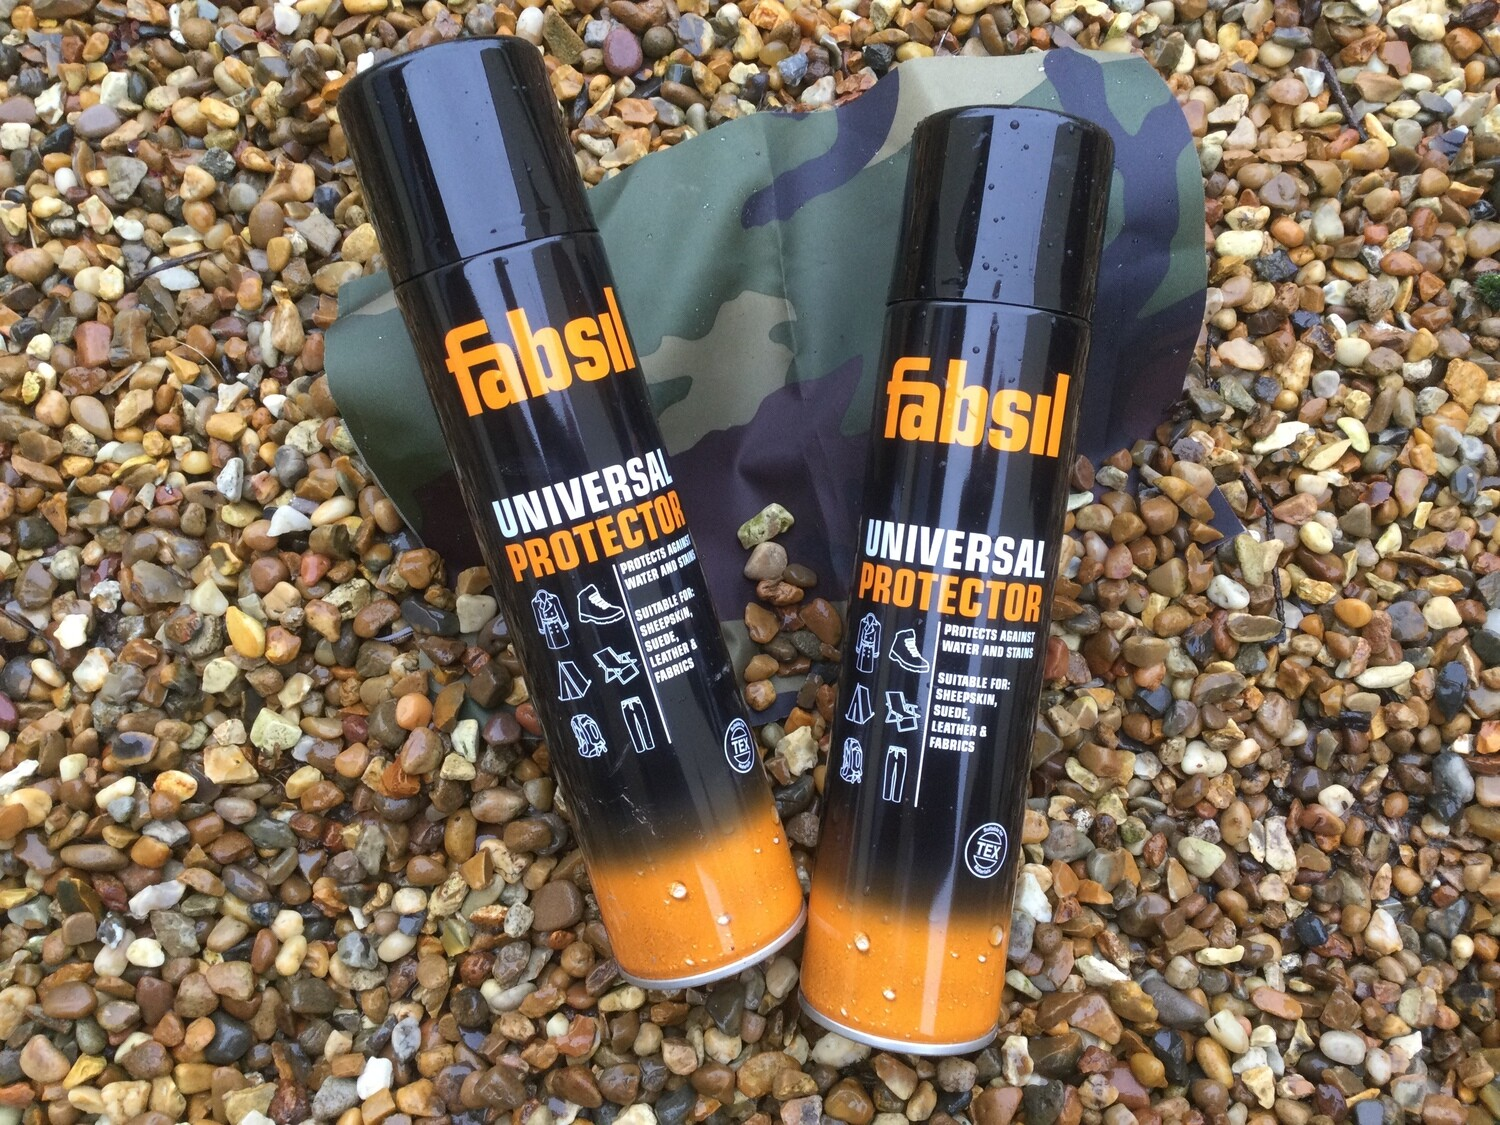 Fabsil Universal Protector 400ml (Pack of 2)